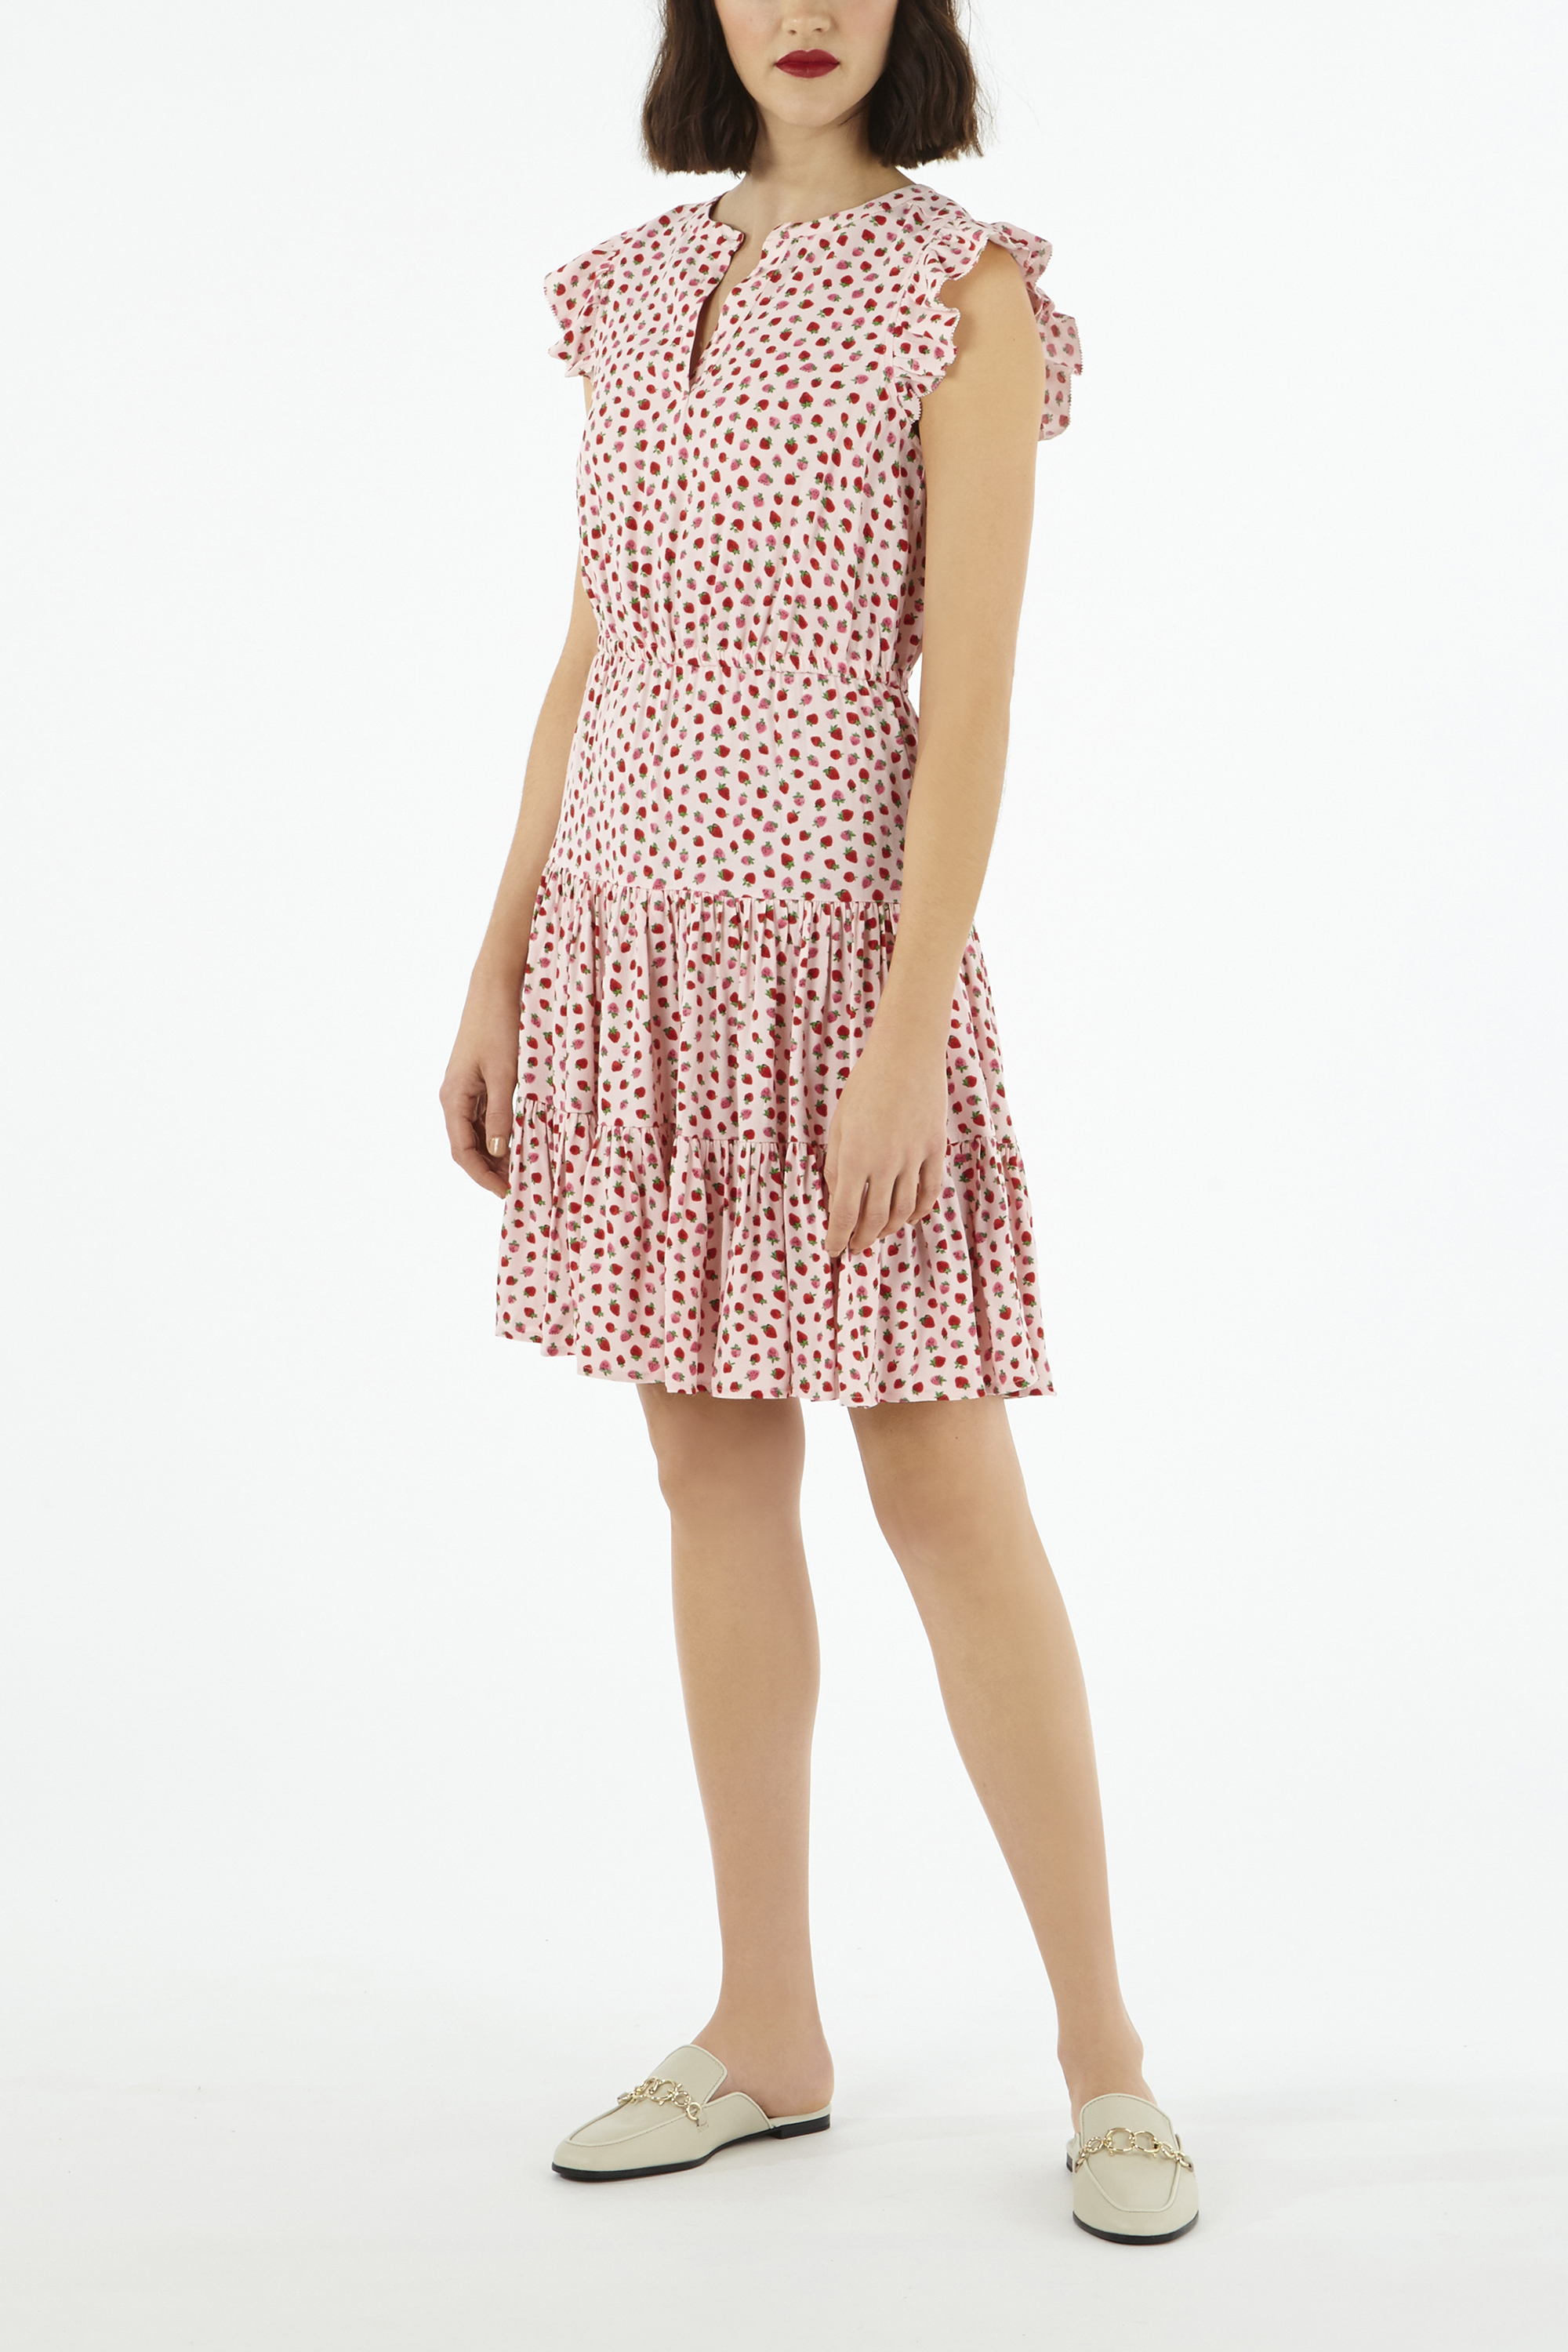 Cath Kidston Strawberry Dress With Tiered Skirt in Light Pink, Straberries, Viscose/Rayon, 10